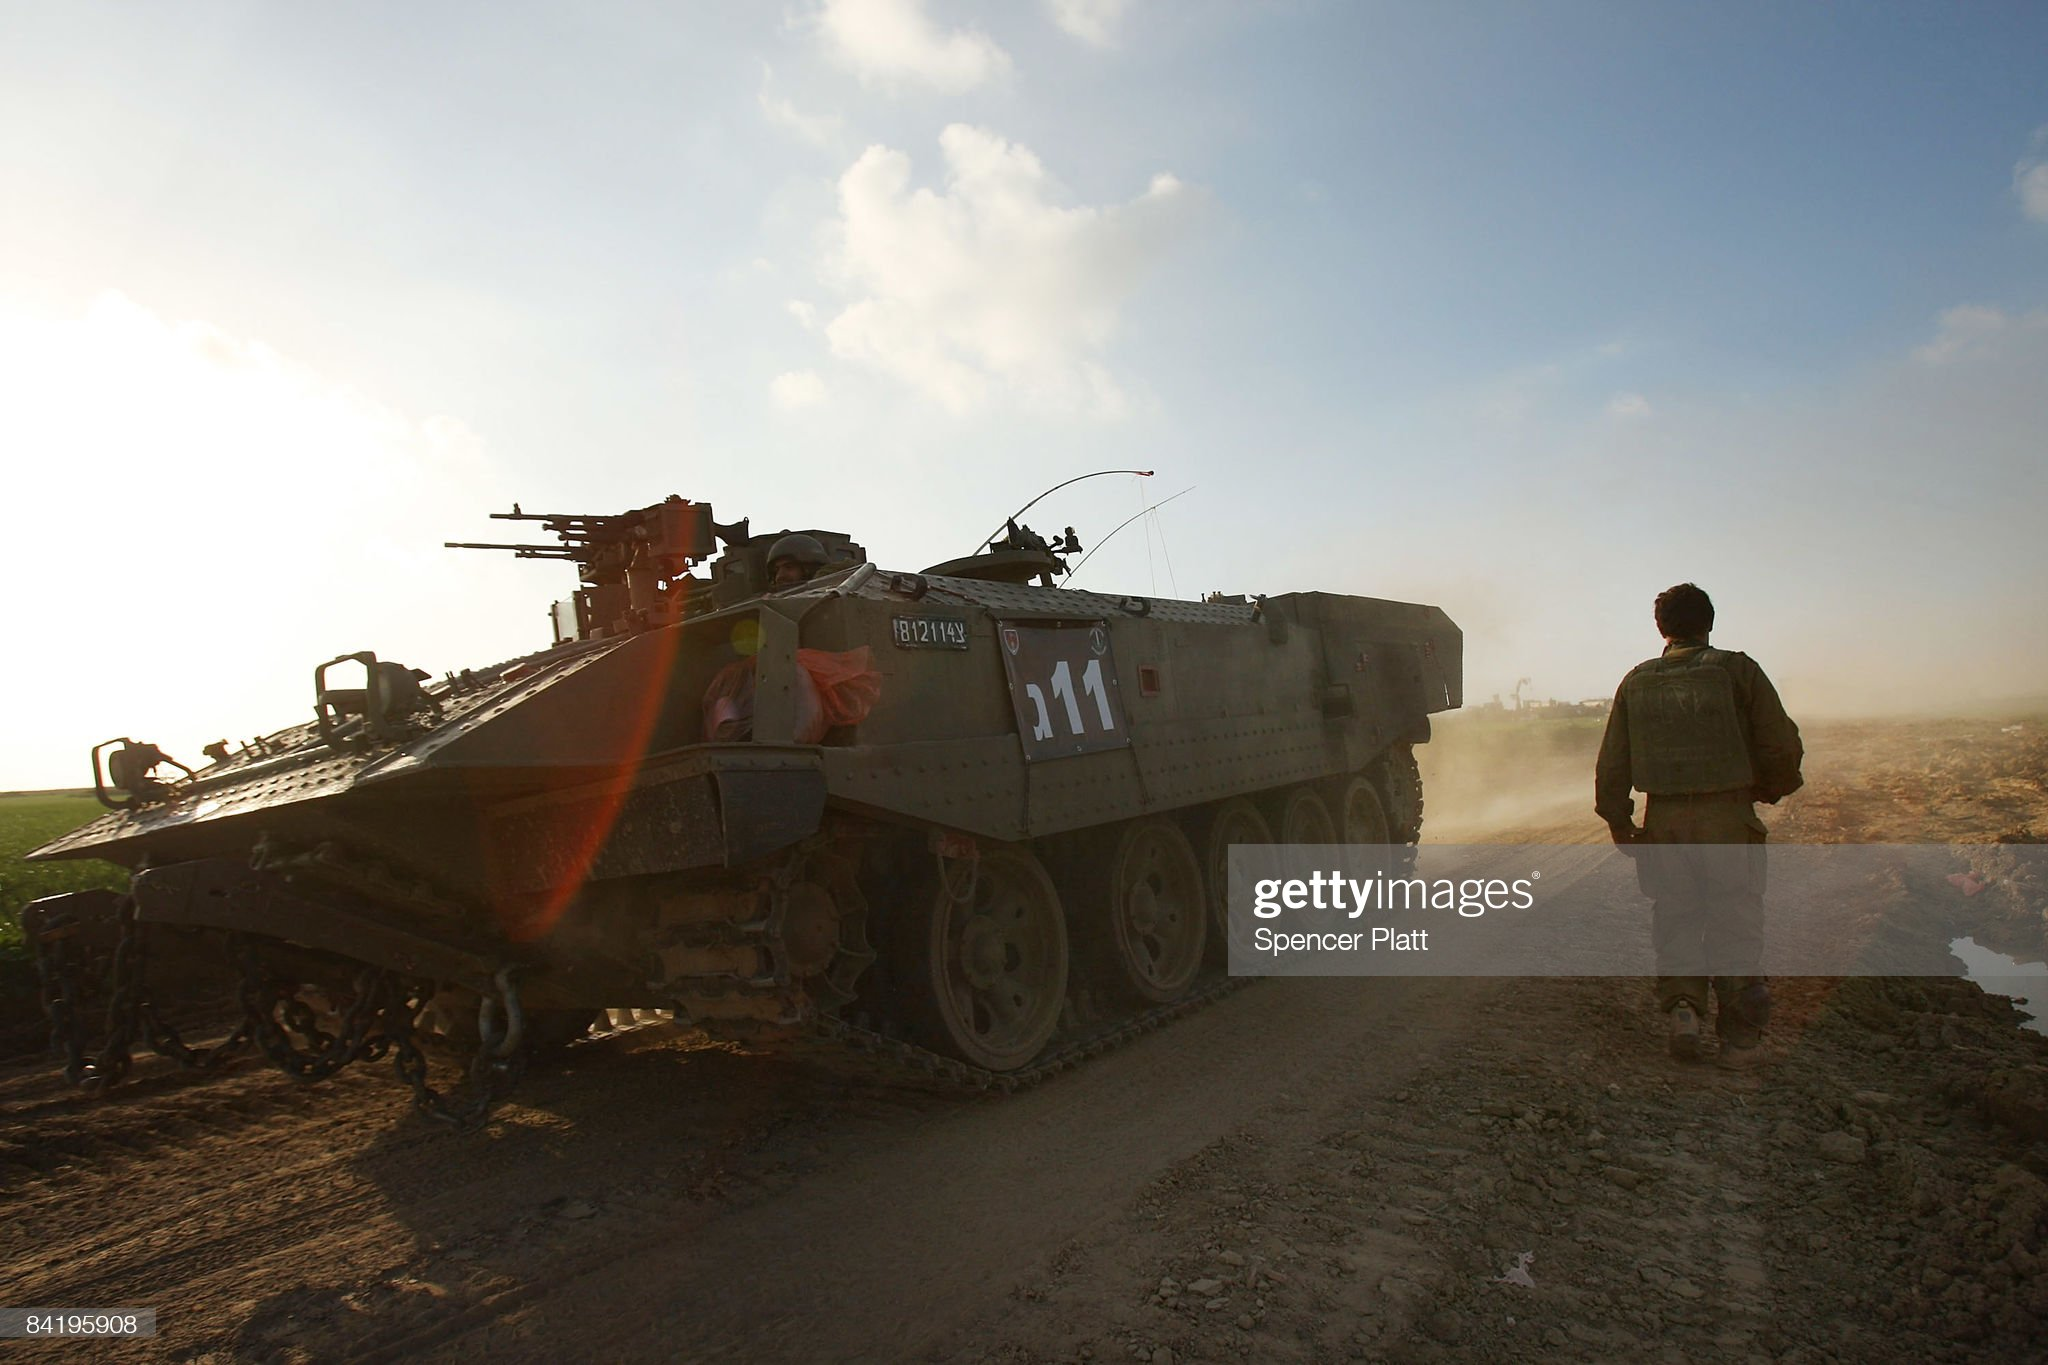 https://media.gettyimages.com/photos/an-armored-personnel-carrier-passes-an-israeli-soldier-during-the-of-picture-id84195908?s=2048x2048